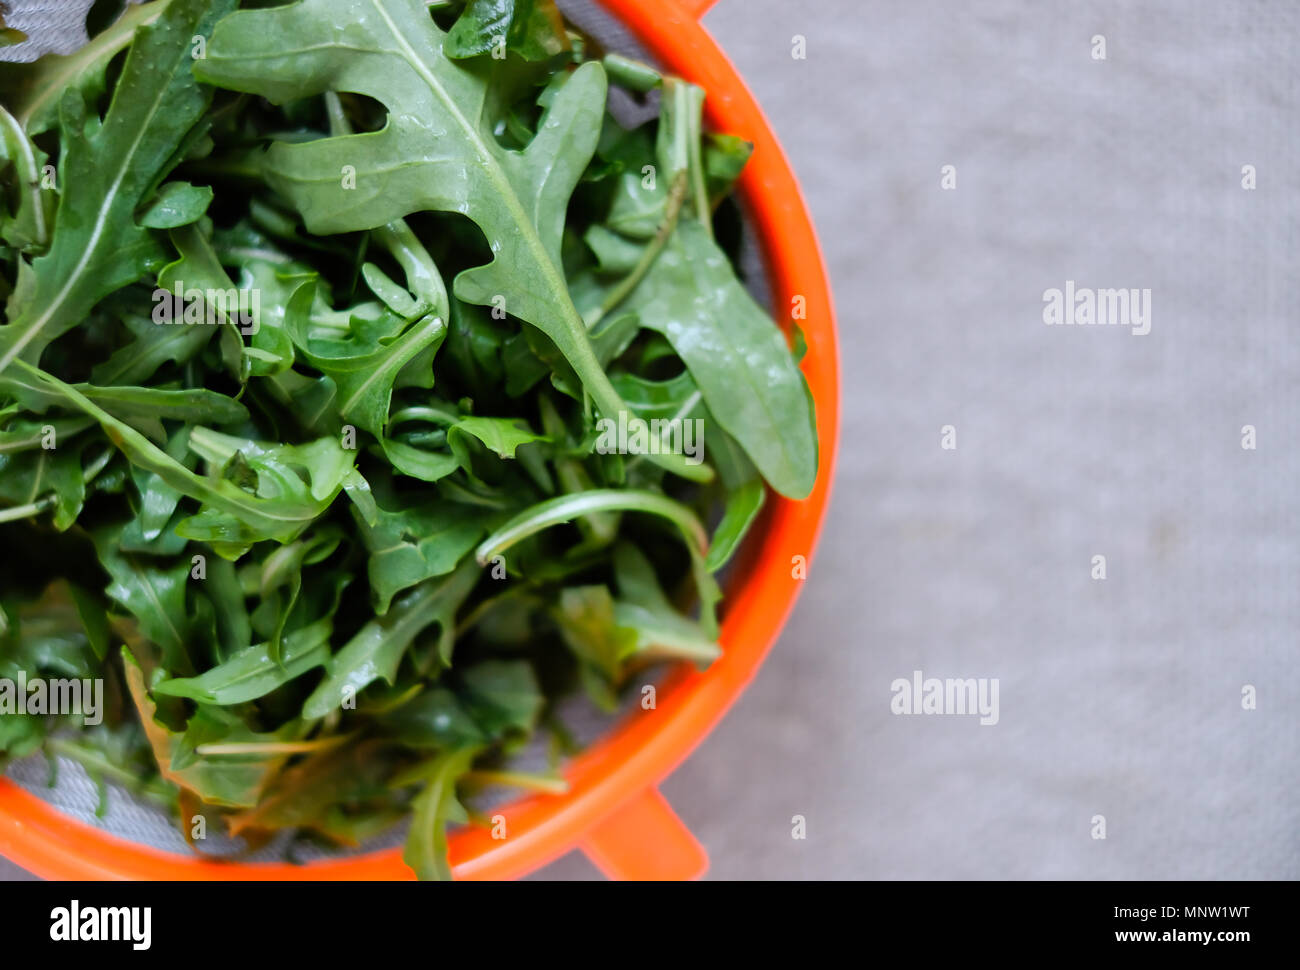 Fresh fragrant arugula in a colander on a neutral light background. Wash greens before eating or cooking. Closeup view. - Stock Image